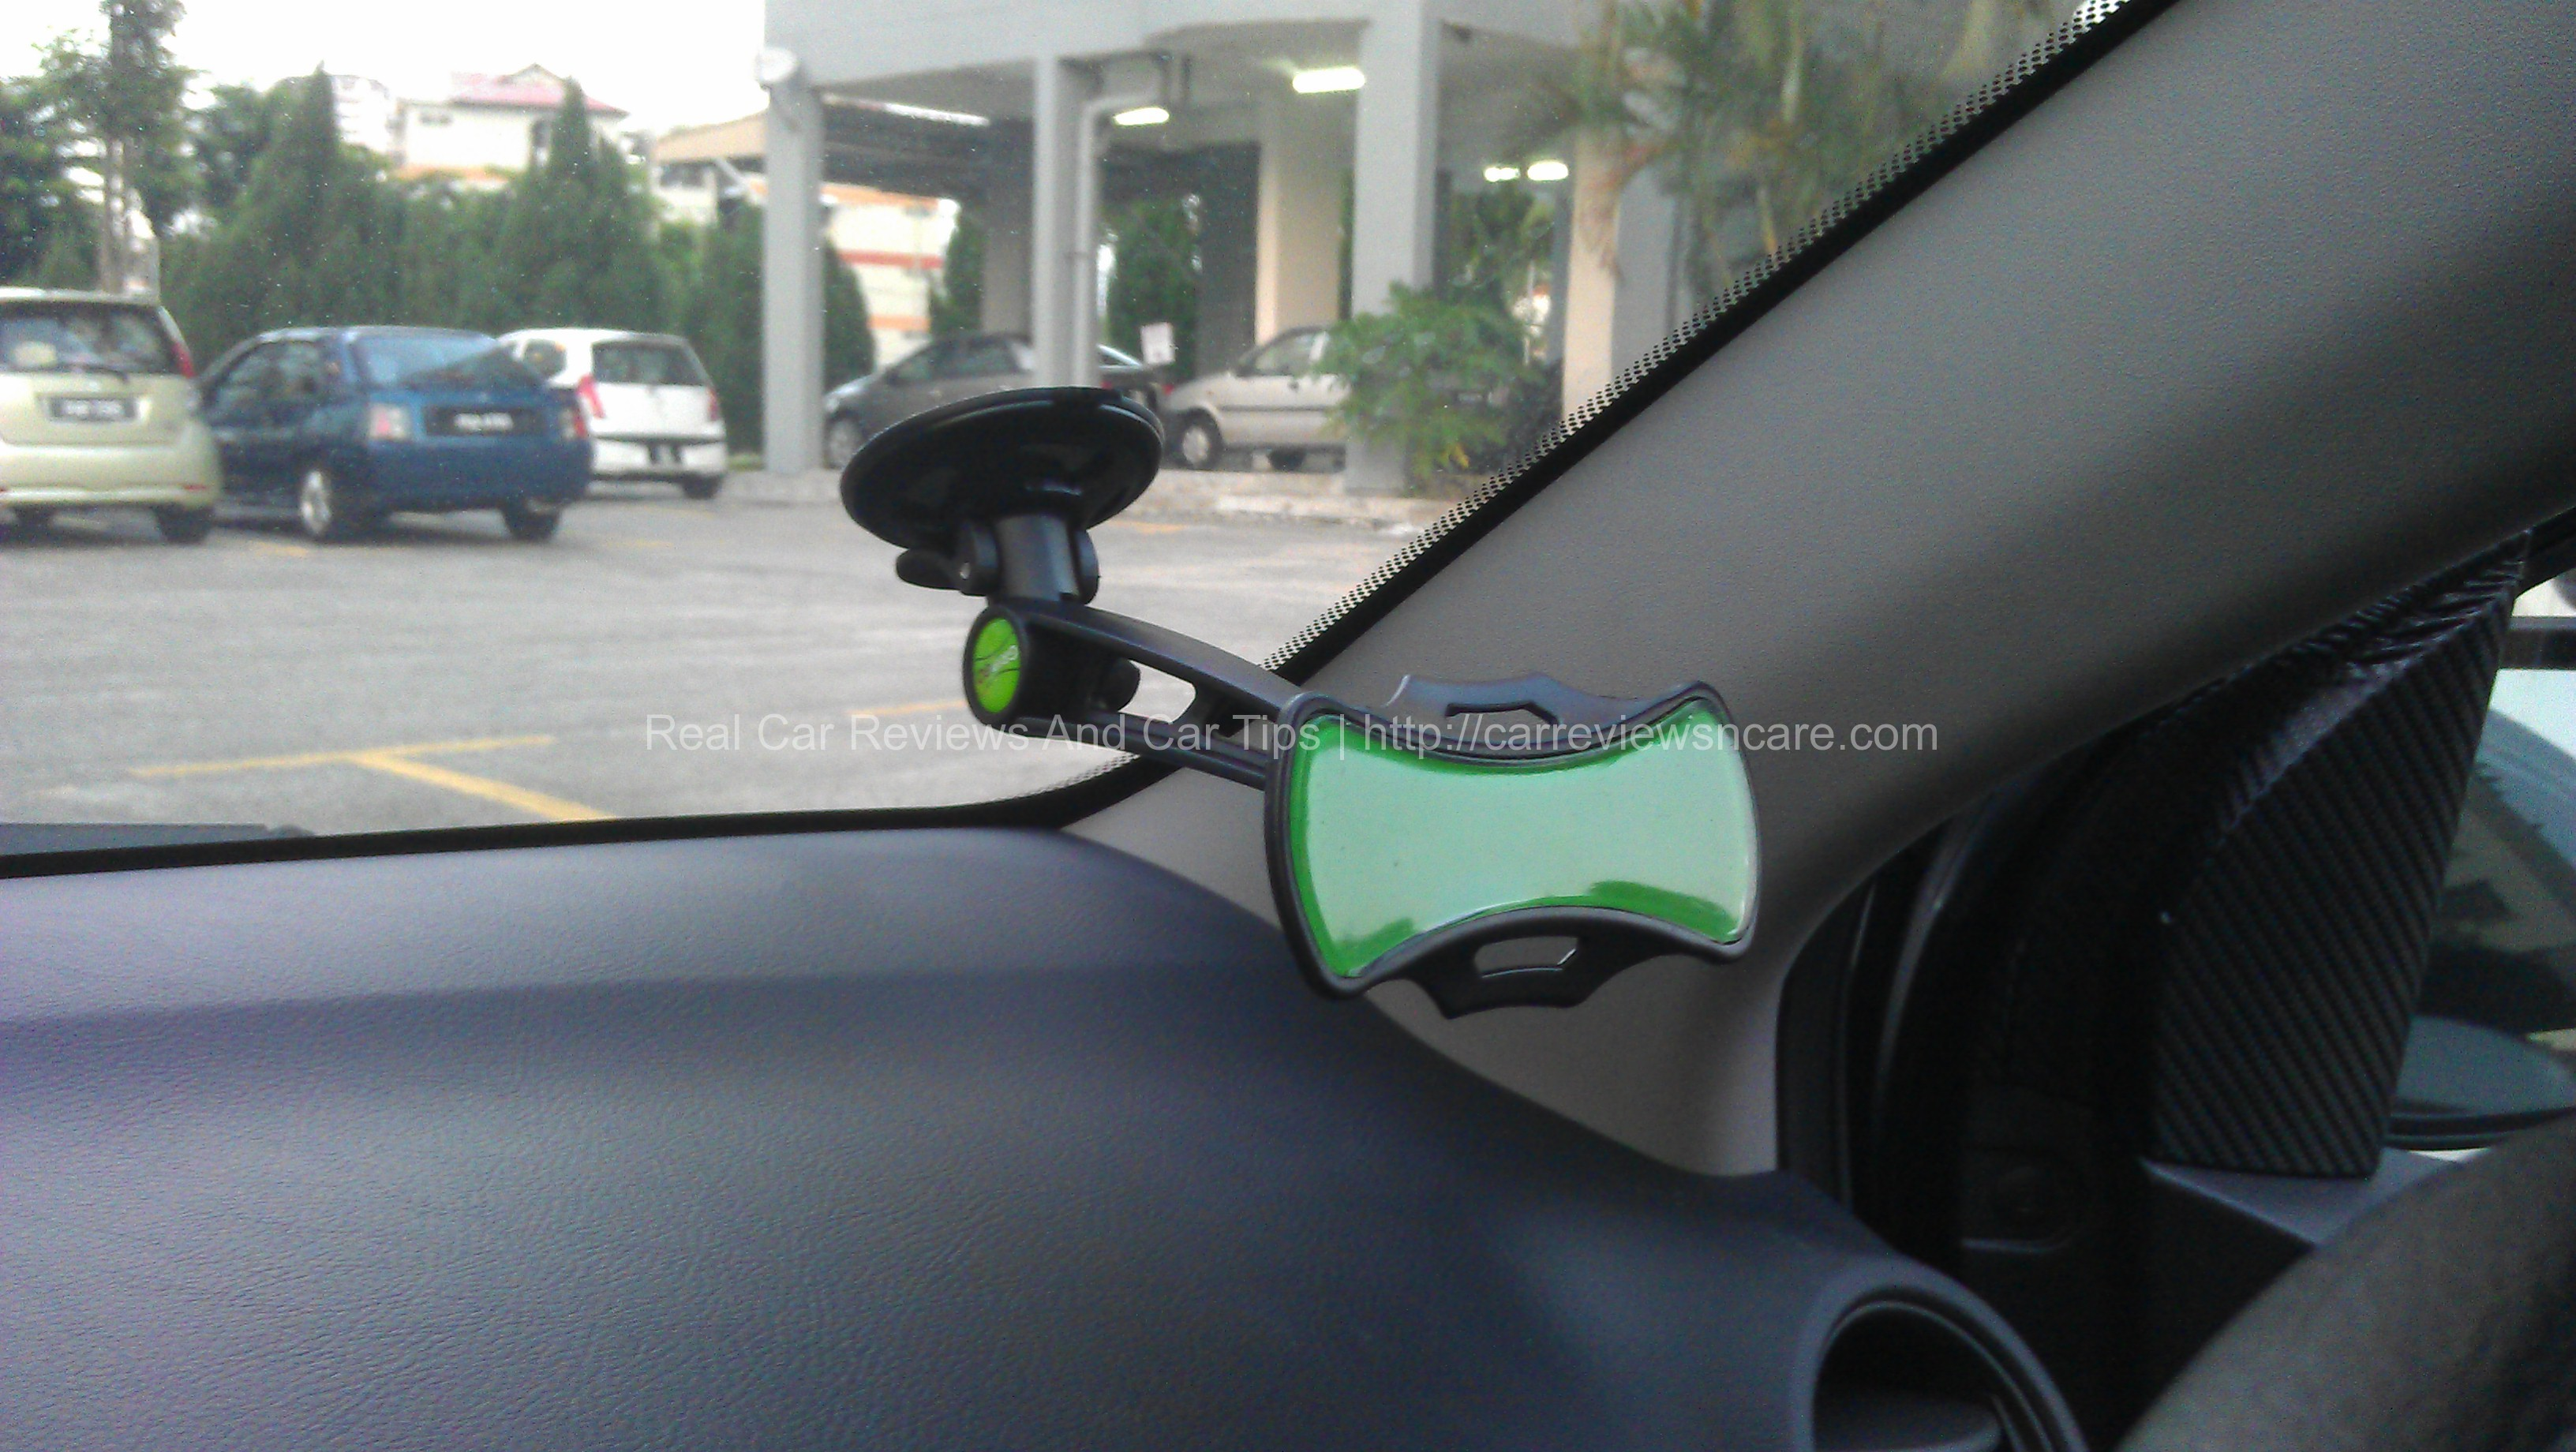 Gripgo hands free cell phone mount review